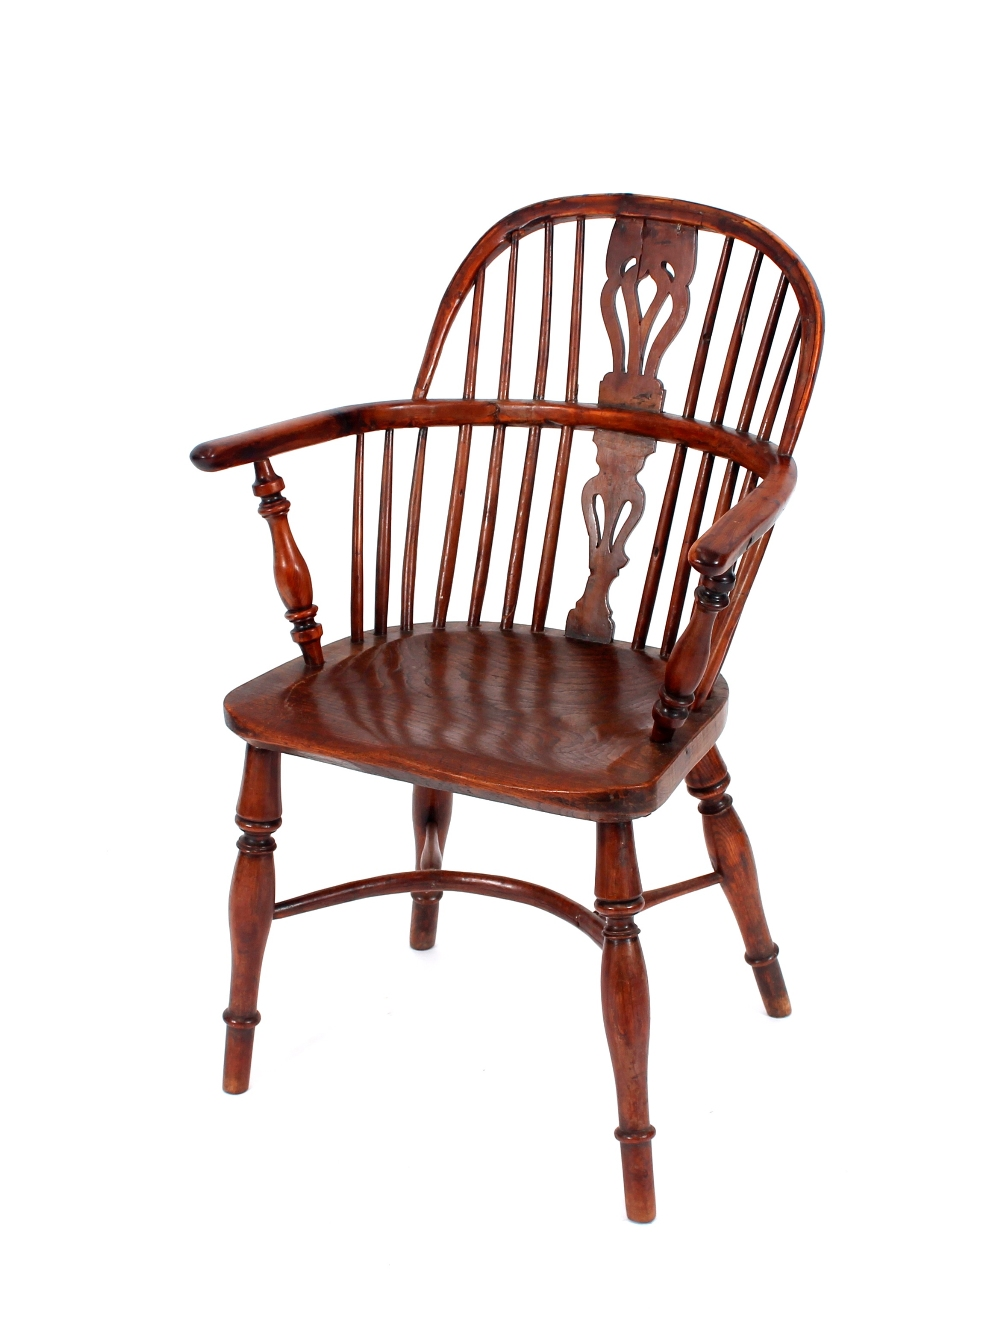 An early 19th Century yew wood and elm stick back Windsor chair,having shaped seat raised on